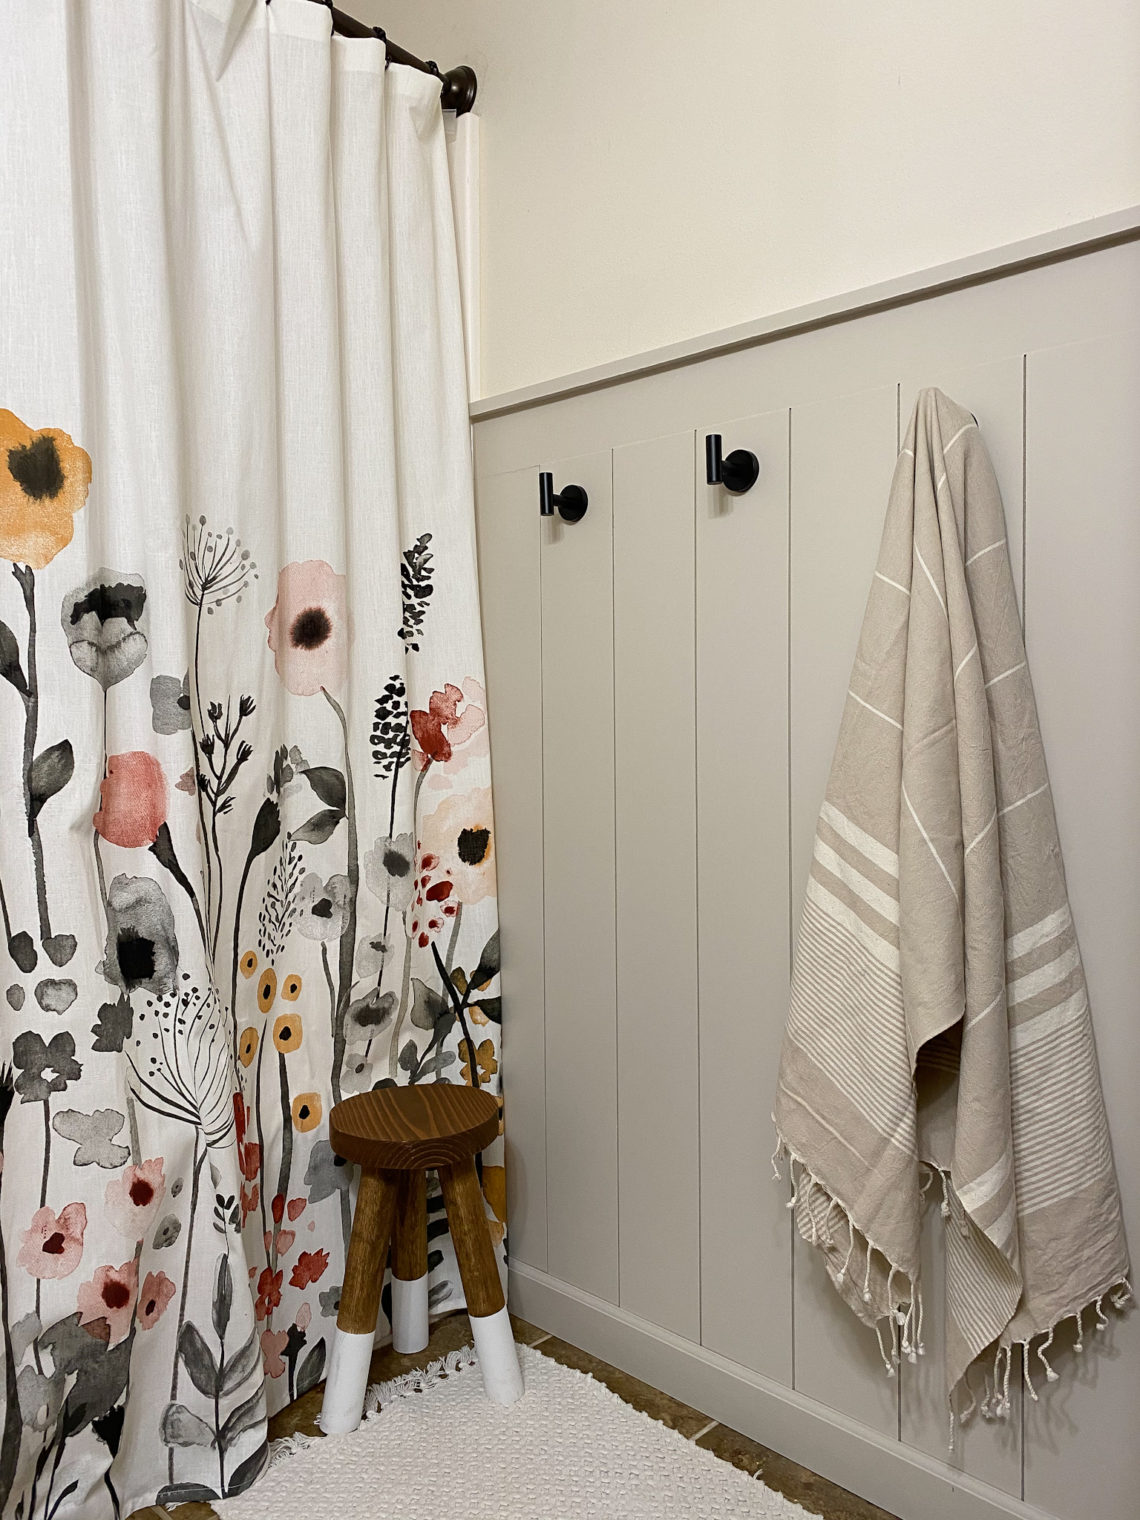 Finished Vertical Shiplap Wall in Bathroom with Floral Curtain